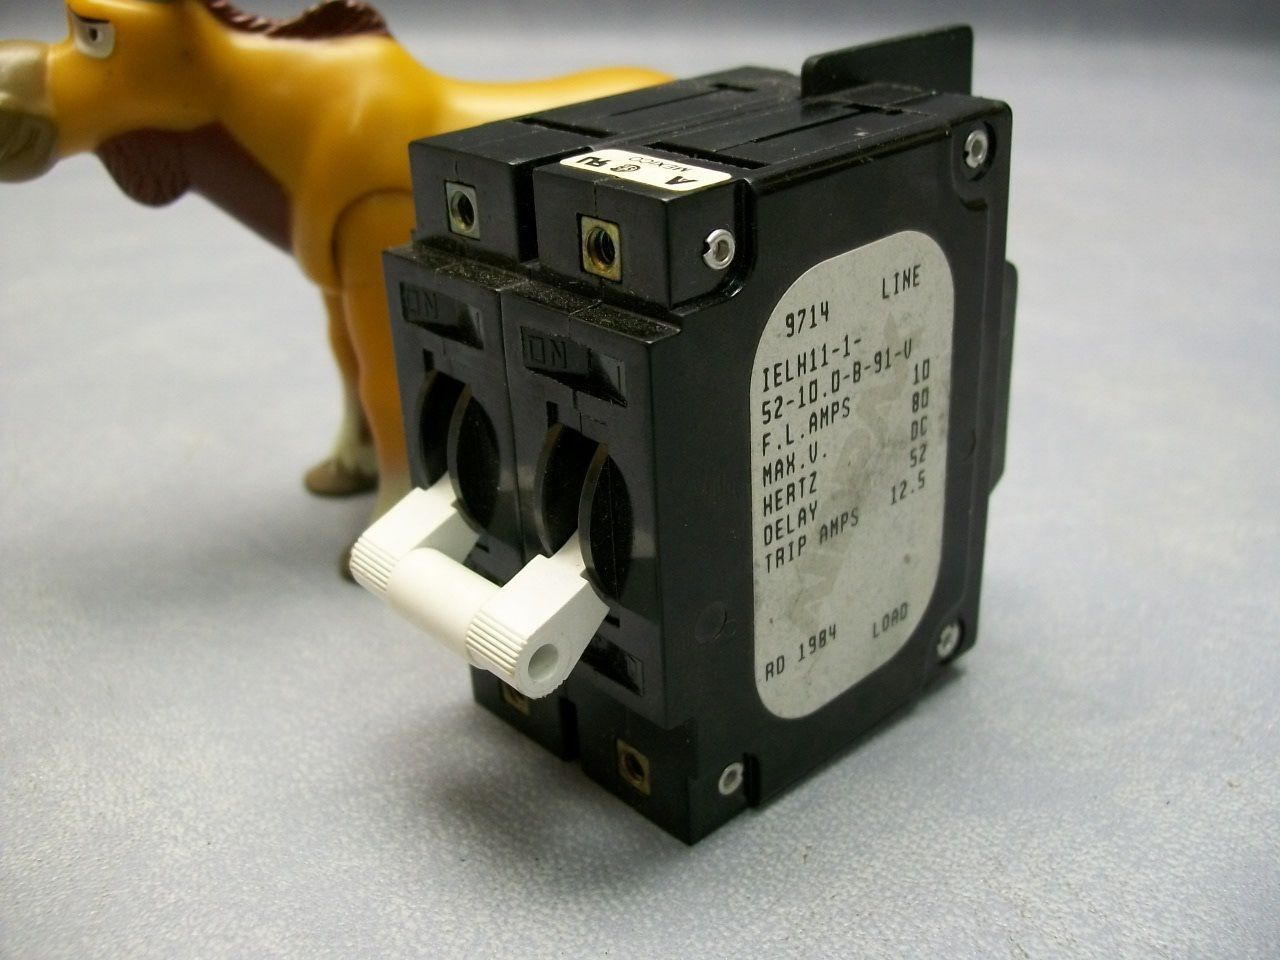 Primary image for IELH11-1-52-10.0-B-91-V Airpax Breaker F L 10amps Hertz DC Max 80v Delay 52